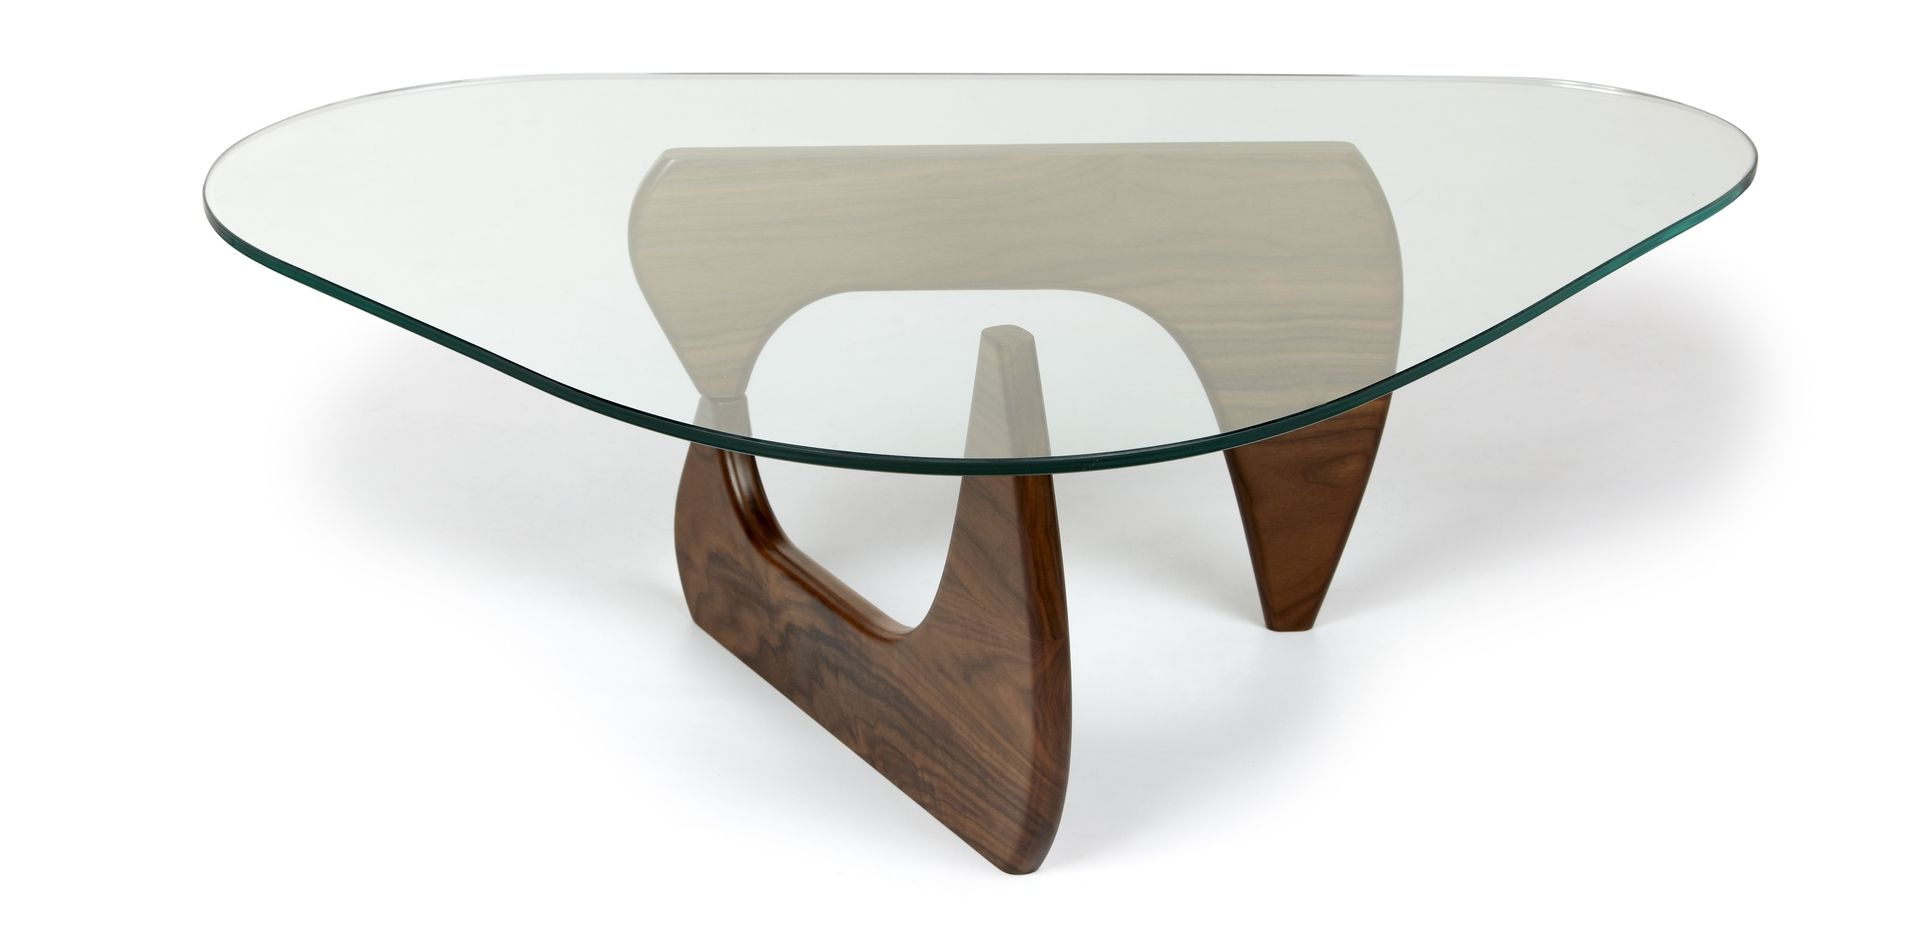 Mid century modern coffee tables google search vancouver based on sculptor isamu noguchis distinctive 1948 table design our mid century modern coffee table draws on his characteristic balance of form and f geotapseo Gallery